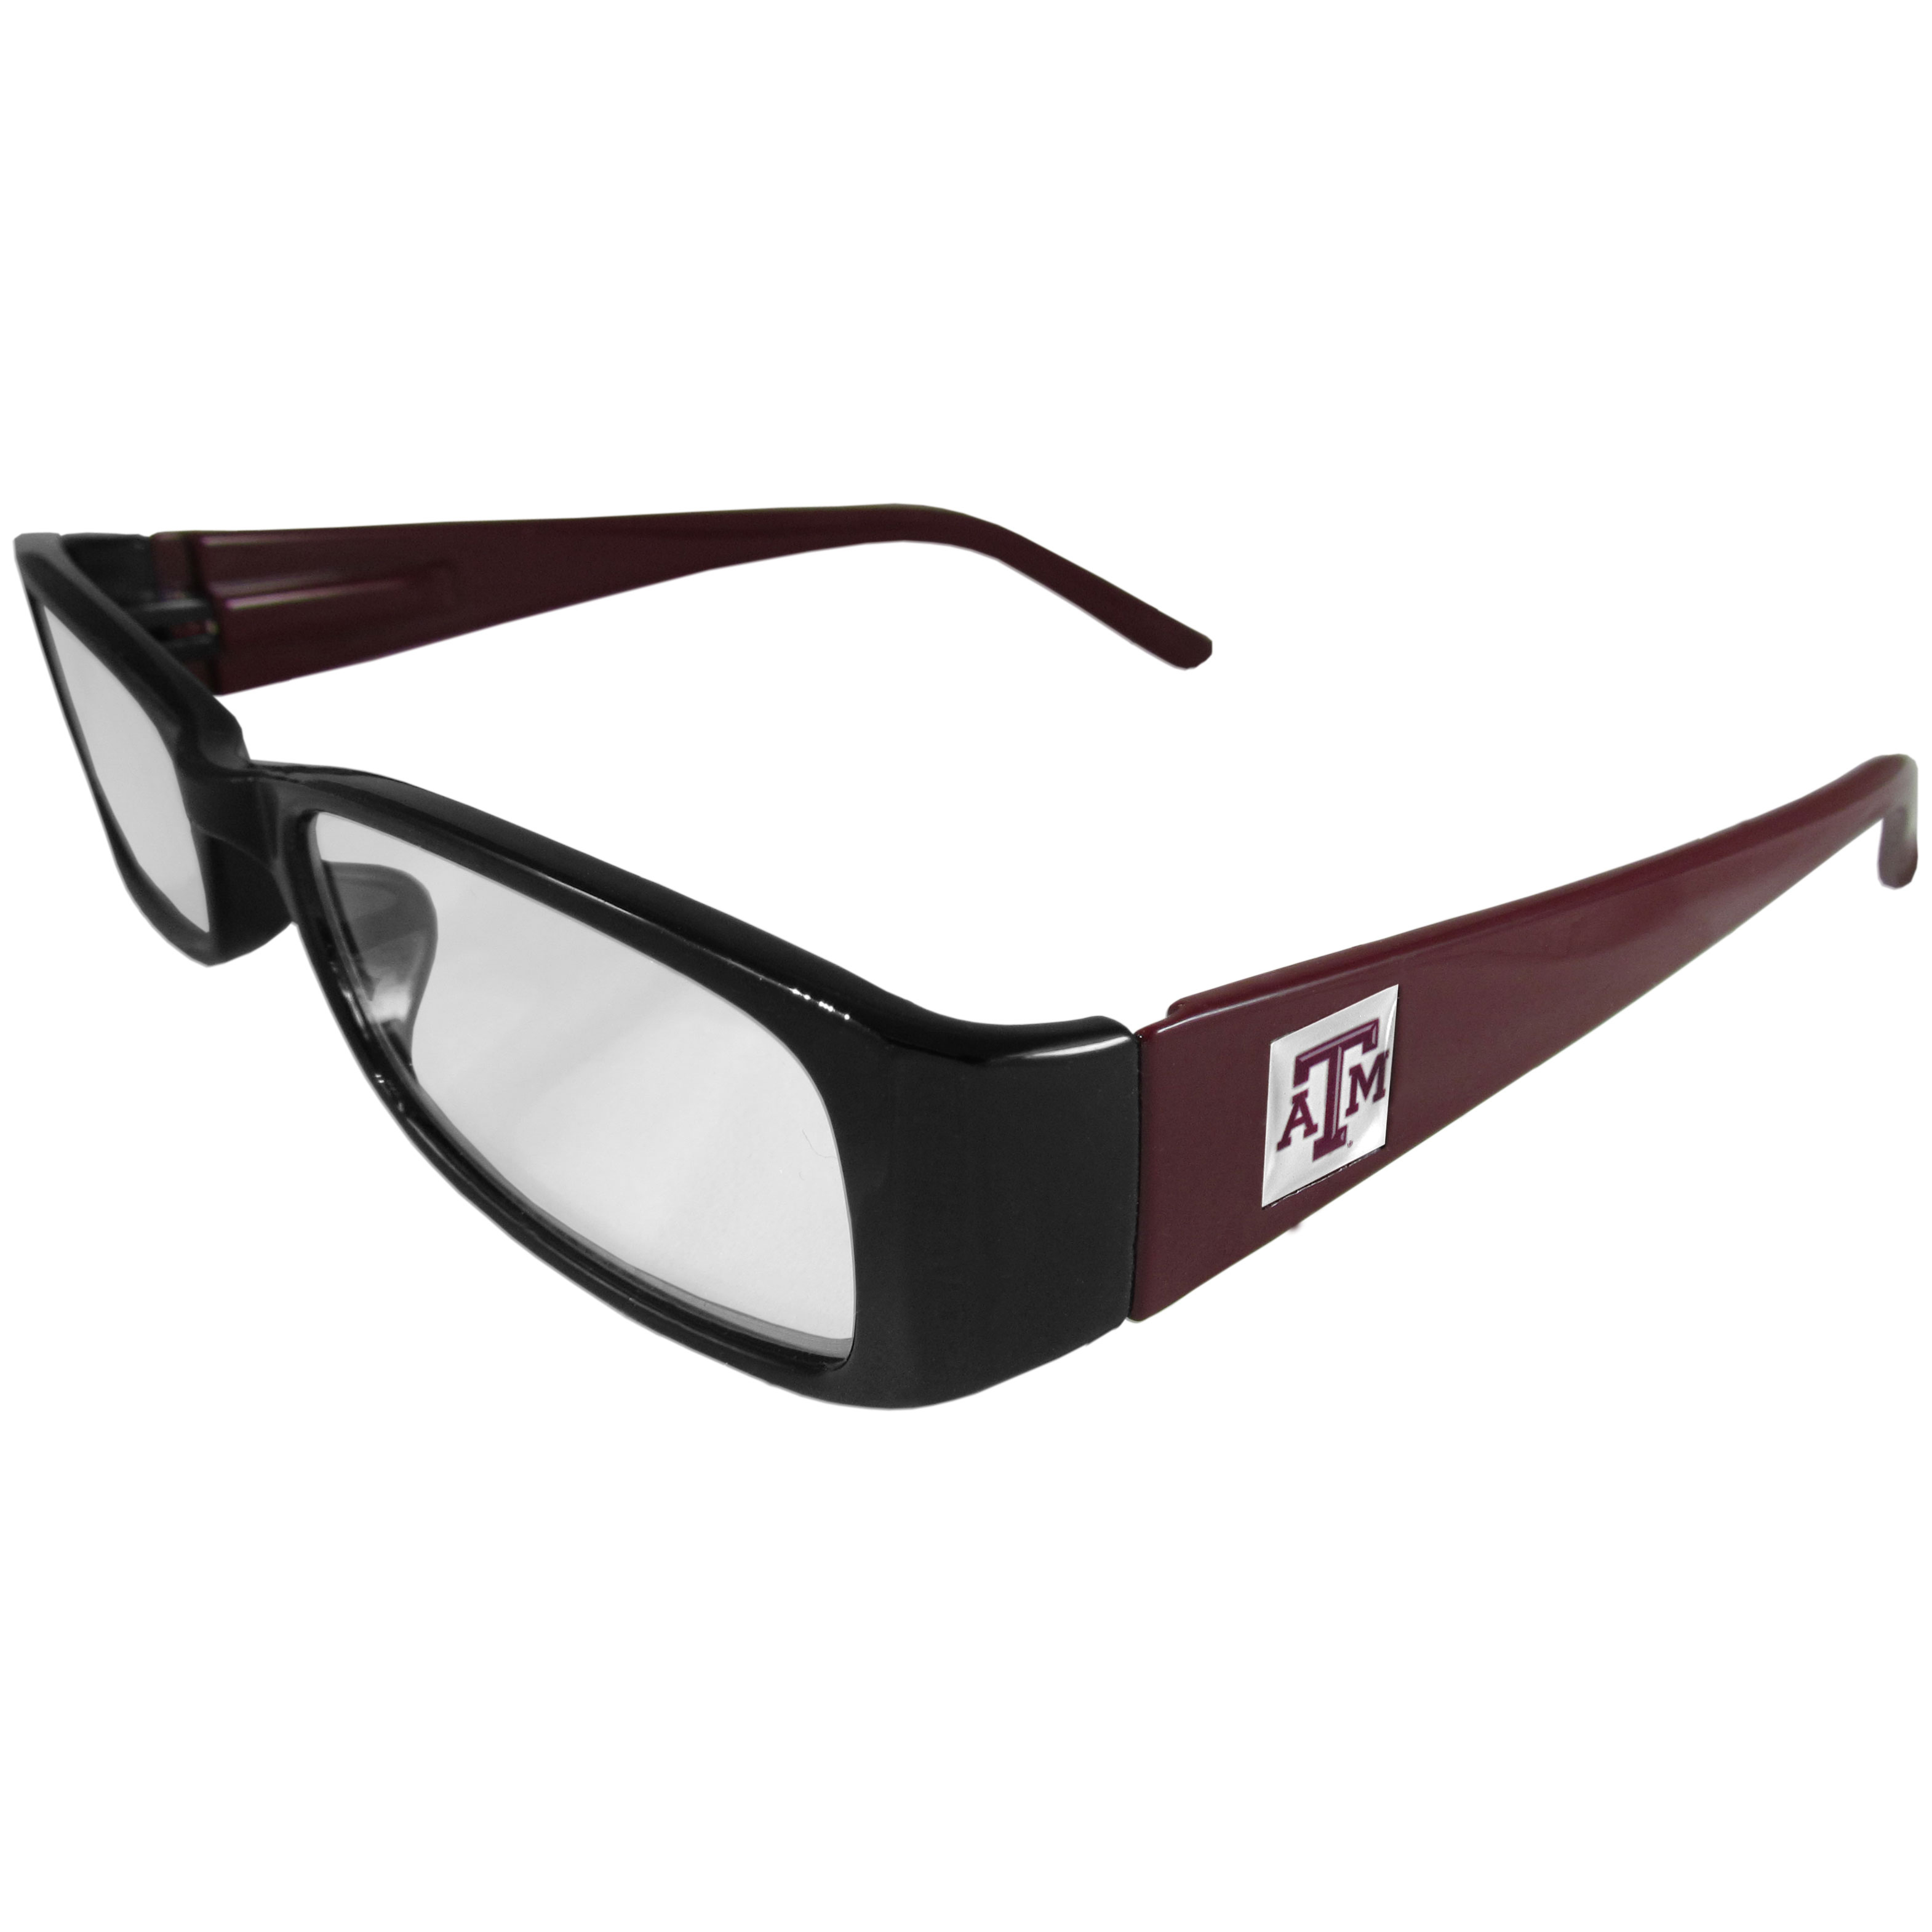 Texas A and M Aggies Reading Glasses +1.75 - Our Texas A & M Aggies reading glasses are 5.25 inches wide and feature the team logo on each arm. Magnification Power 1.75